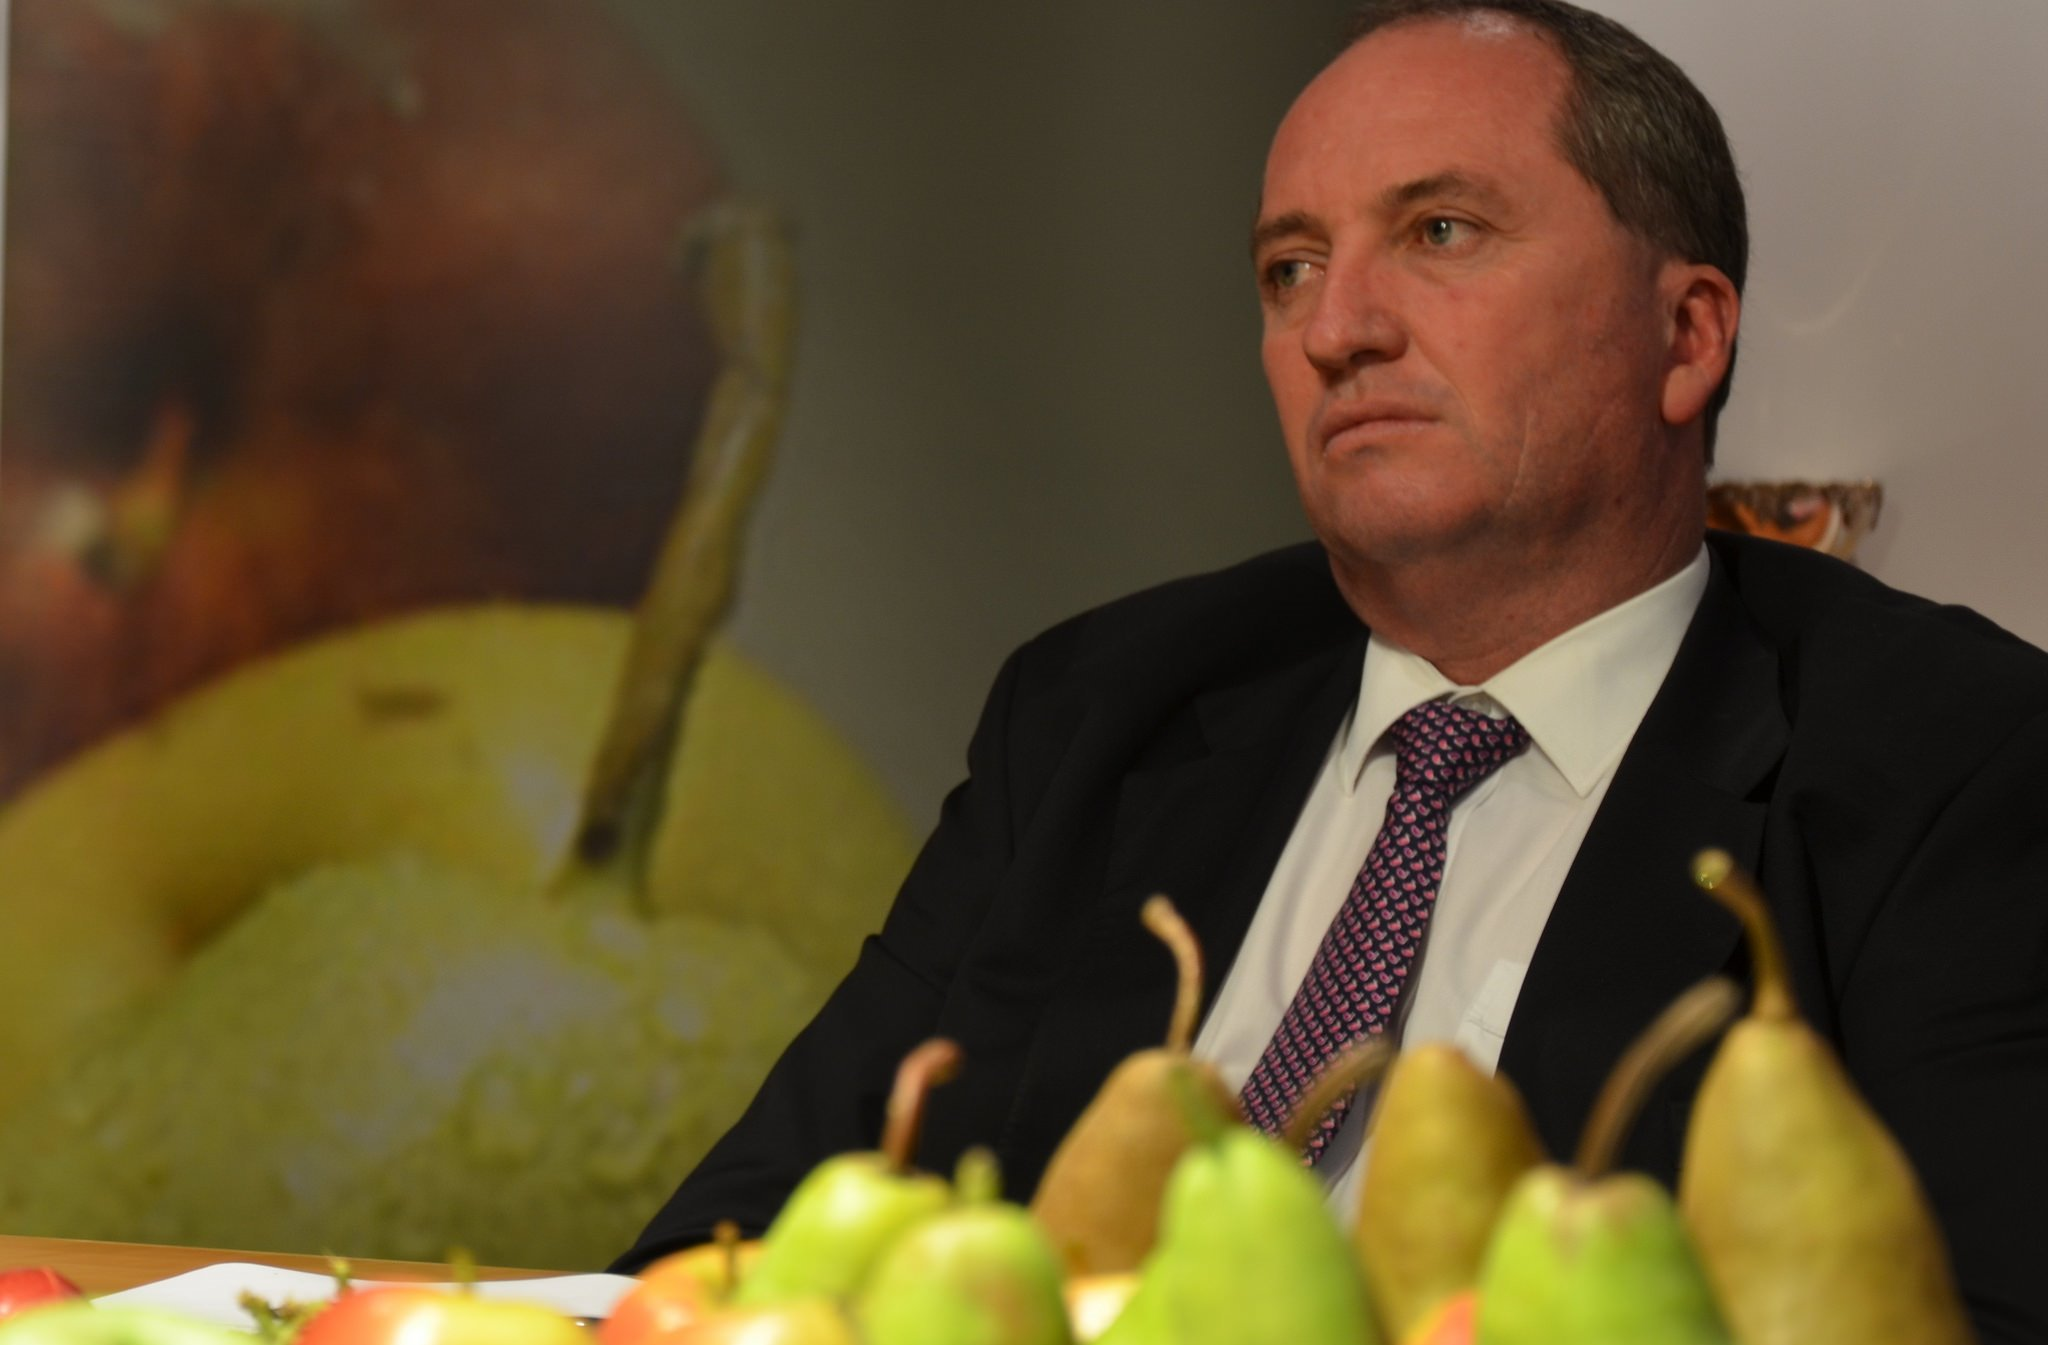 Barnaby Joyce in 2014. (Flickr/Apple and Pear Australia)